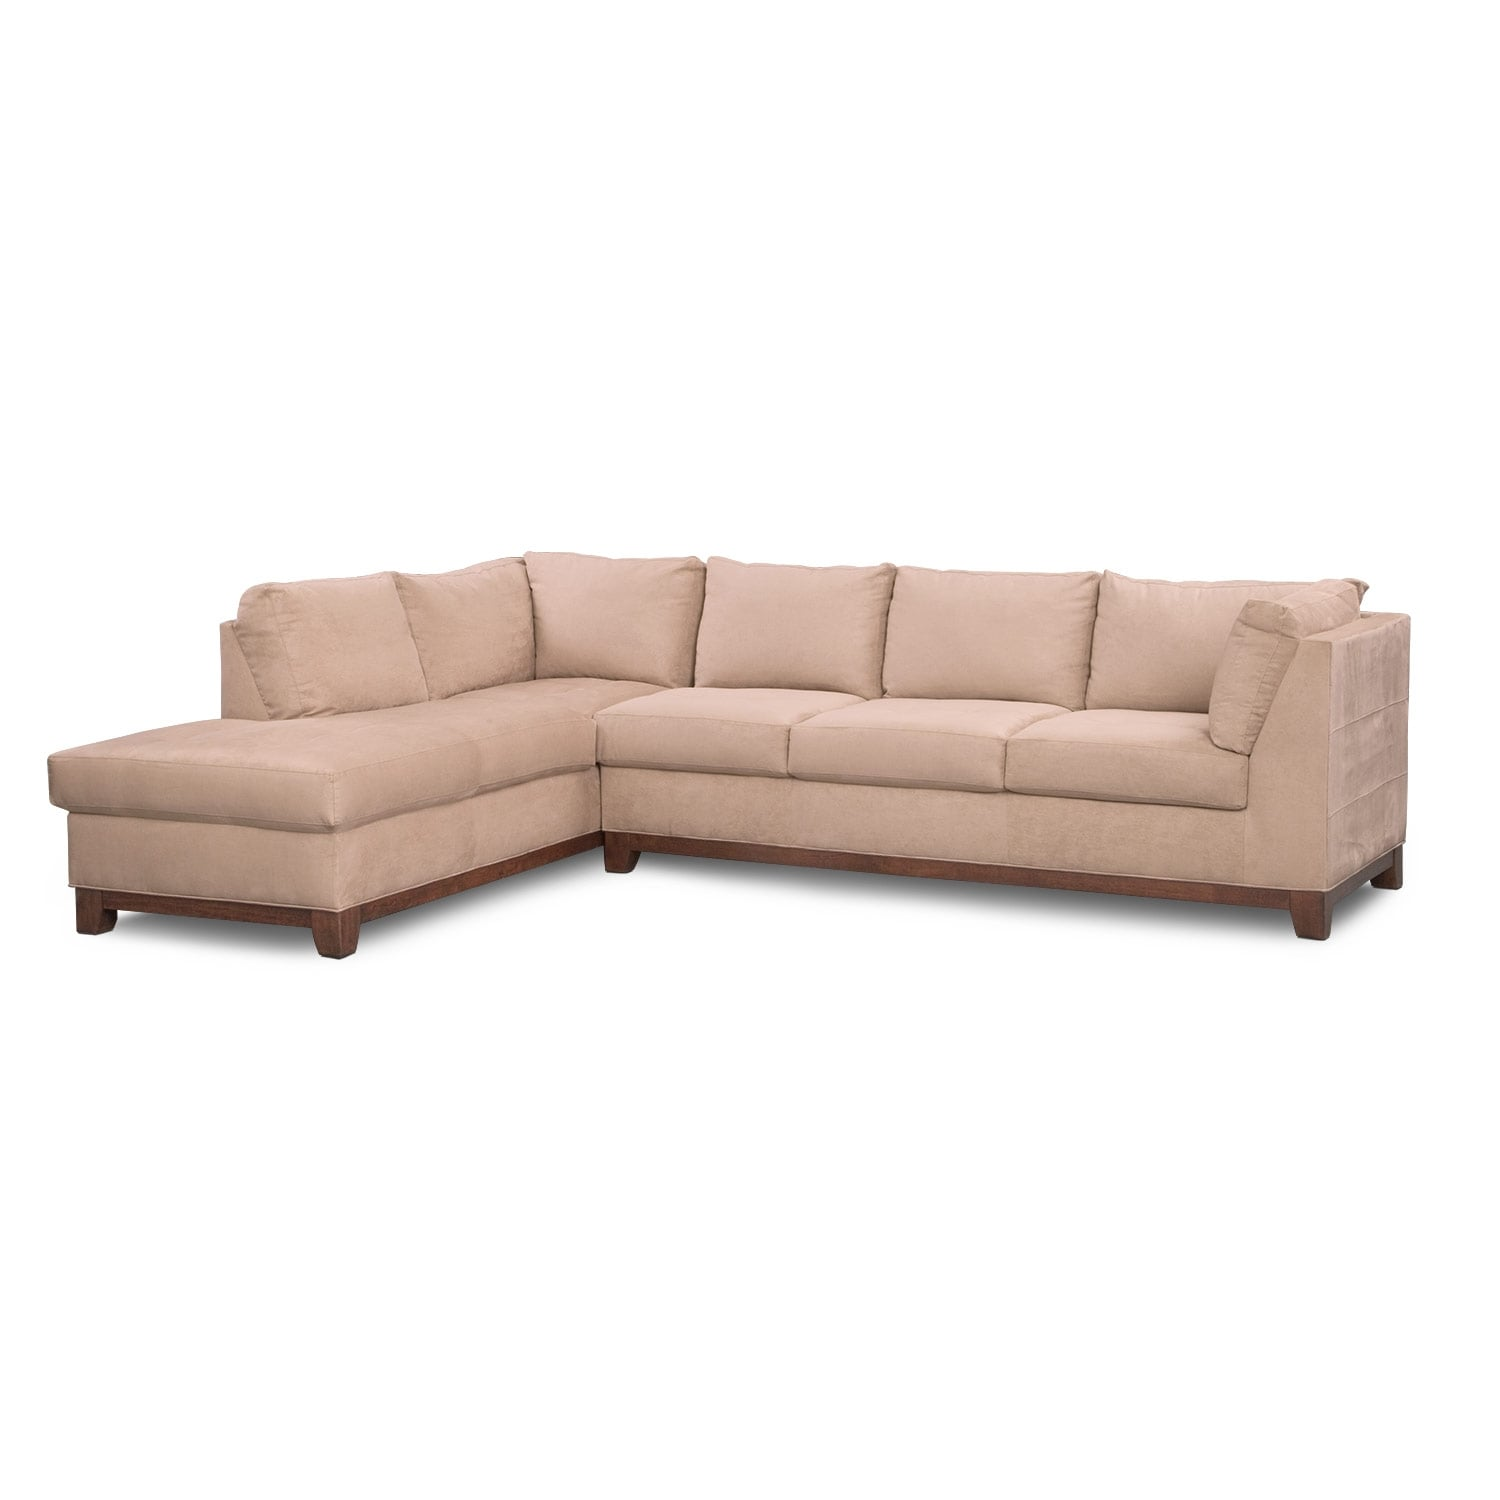 2 piece sectional sofa chaise mart lansing michigan soho with left facing